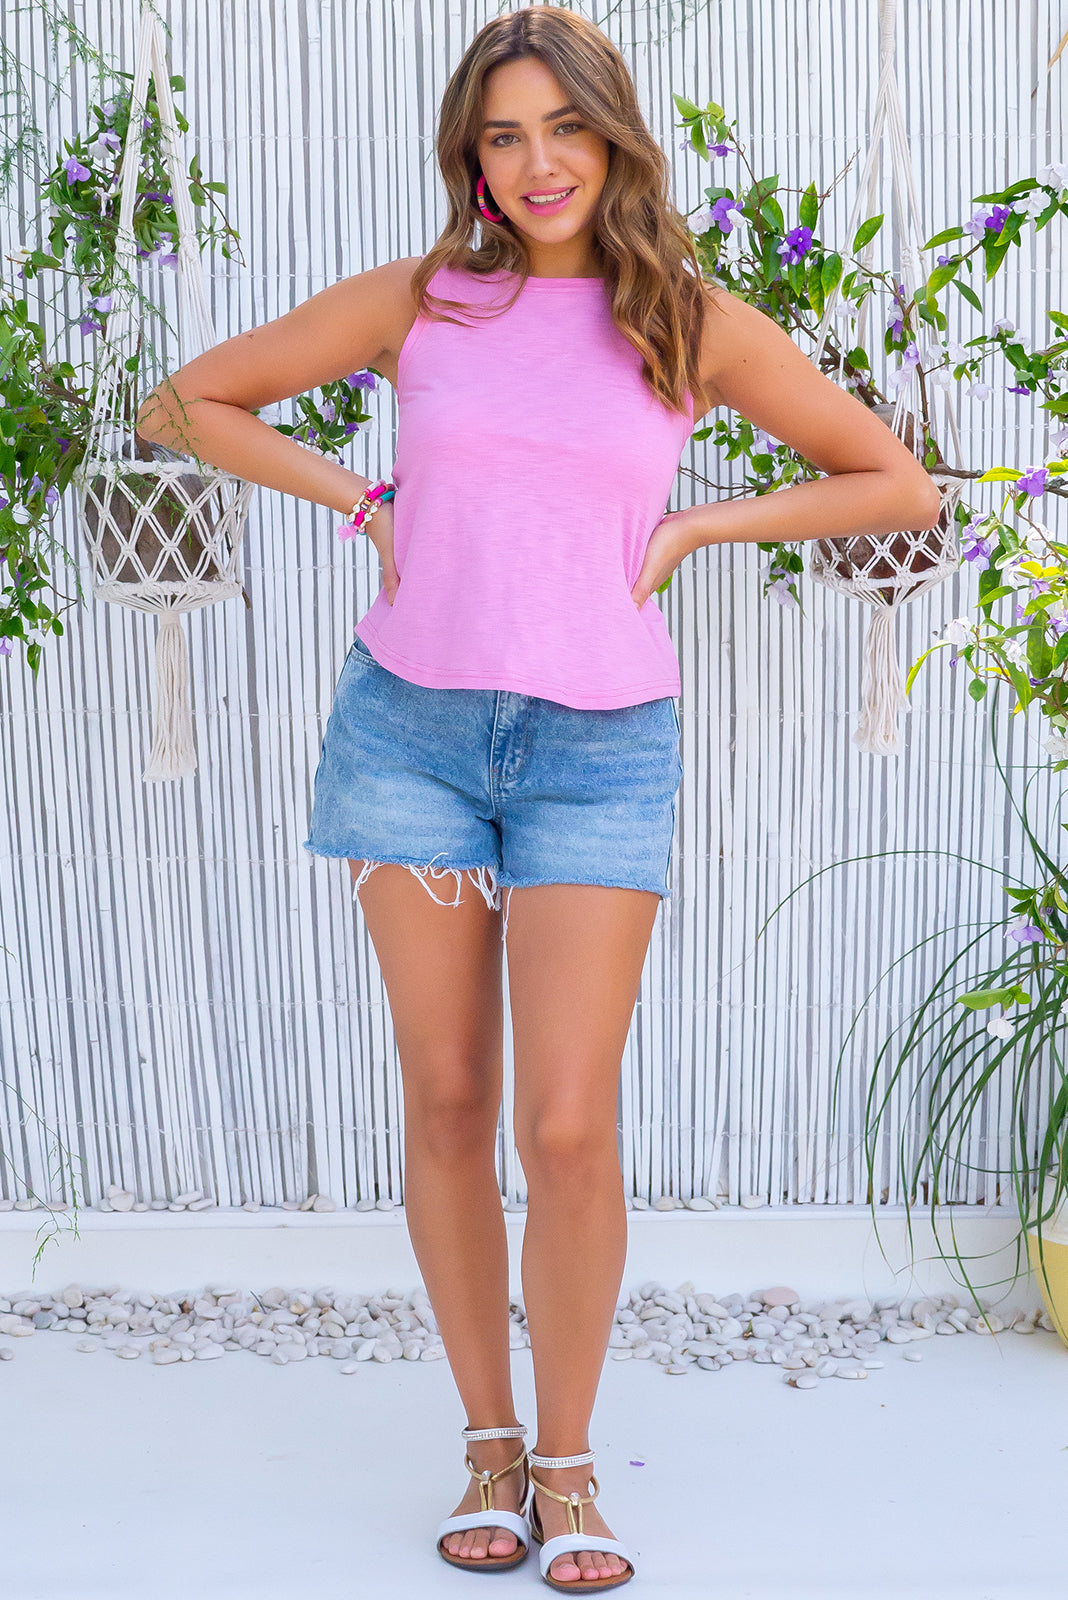 The Tali Pink Sugar Tank Top is a classic tank top cut featuring narrow over bust, relaxed around middle, sleeveless and 55% cotton, 45% polyester in sweet taffy pink colour.